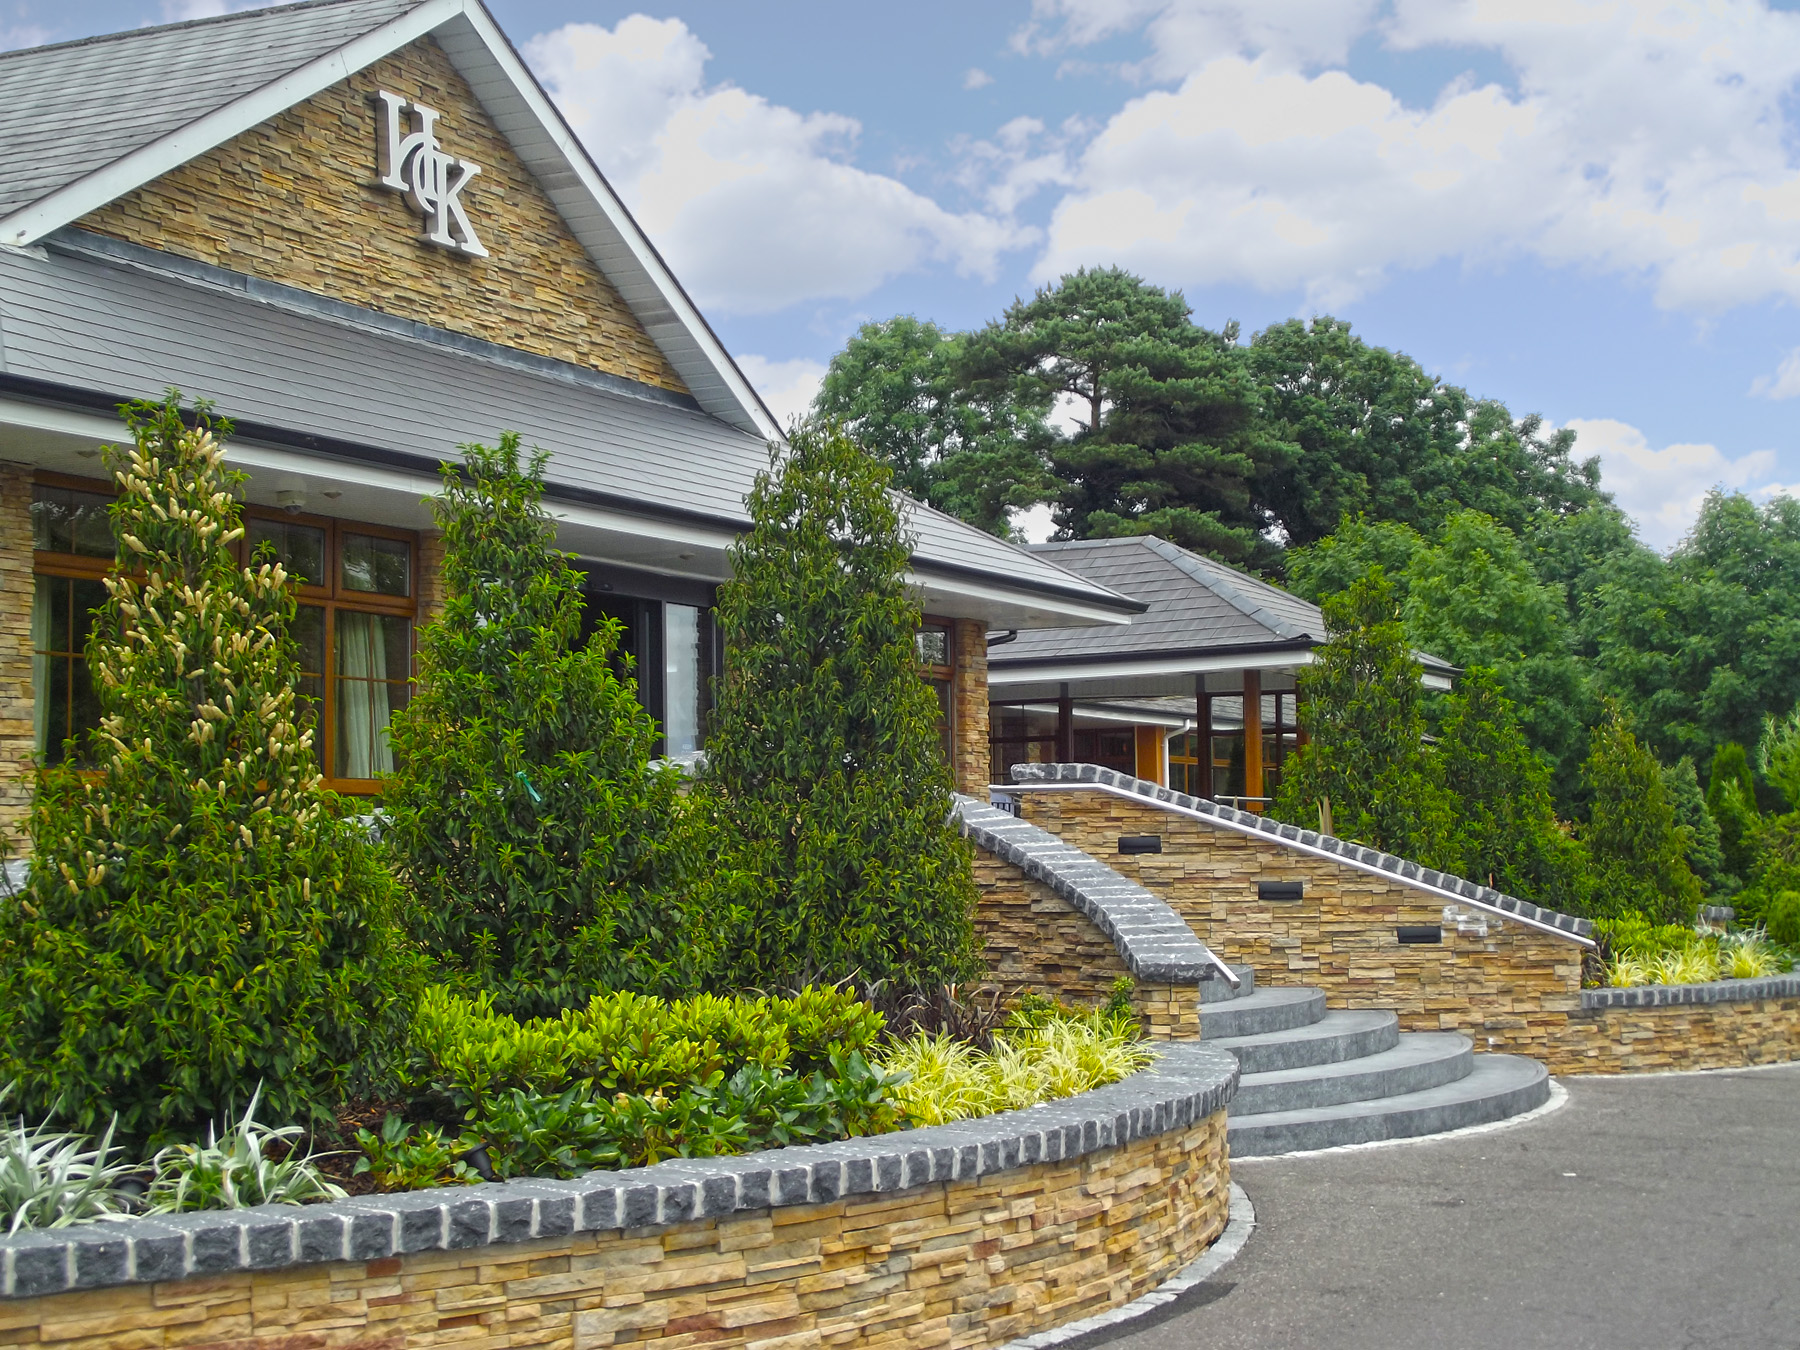 Hotel kilmore entrance brackley landscaping for Hotel landscape design